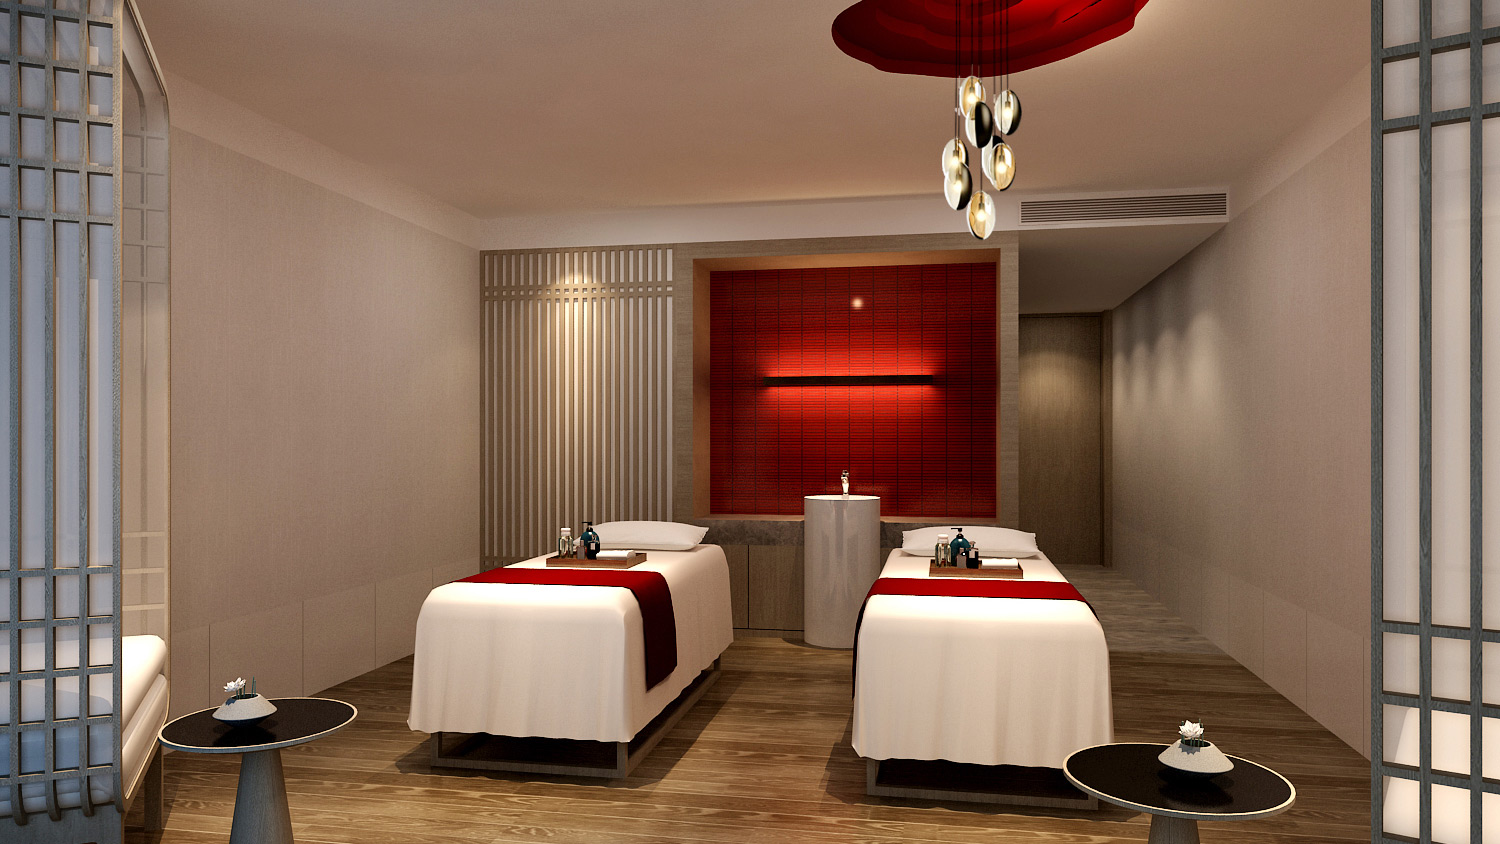 Inside one of their wellness spa's spacious treatment rooms.